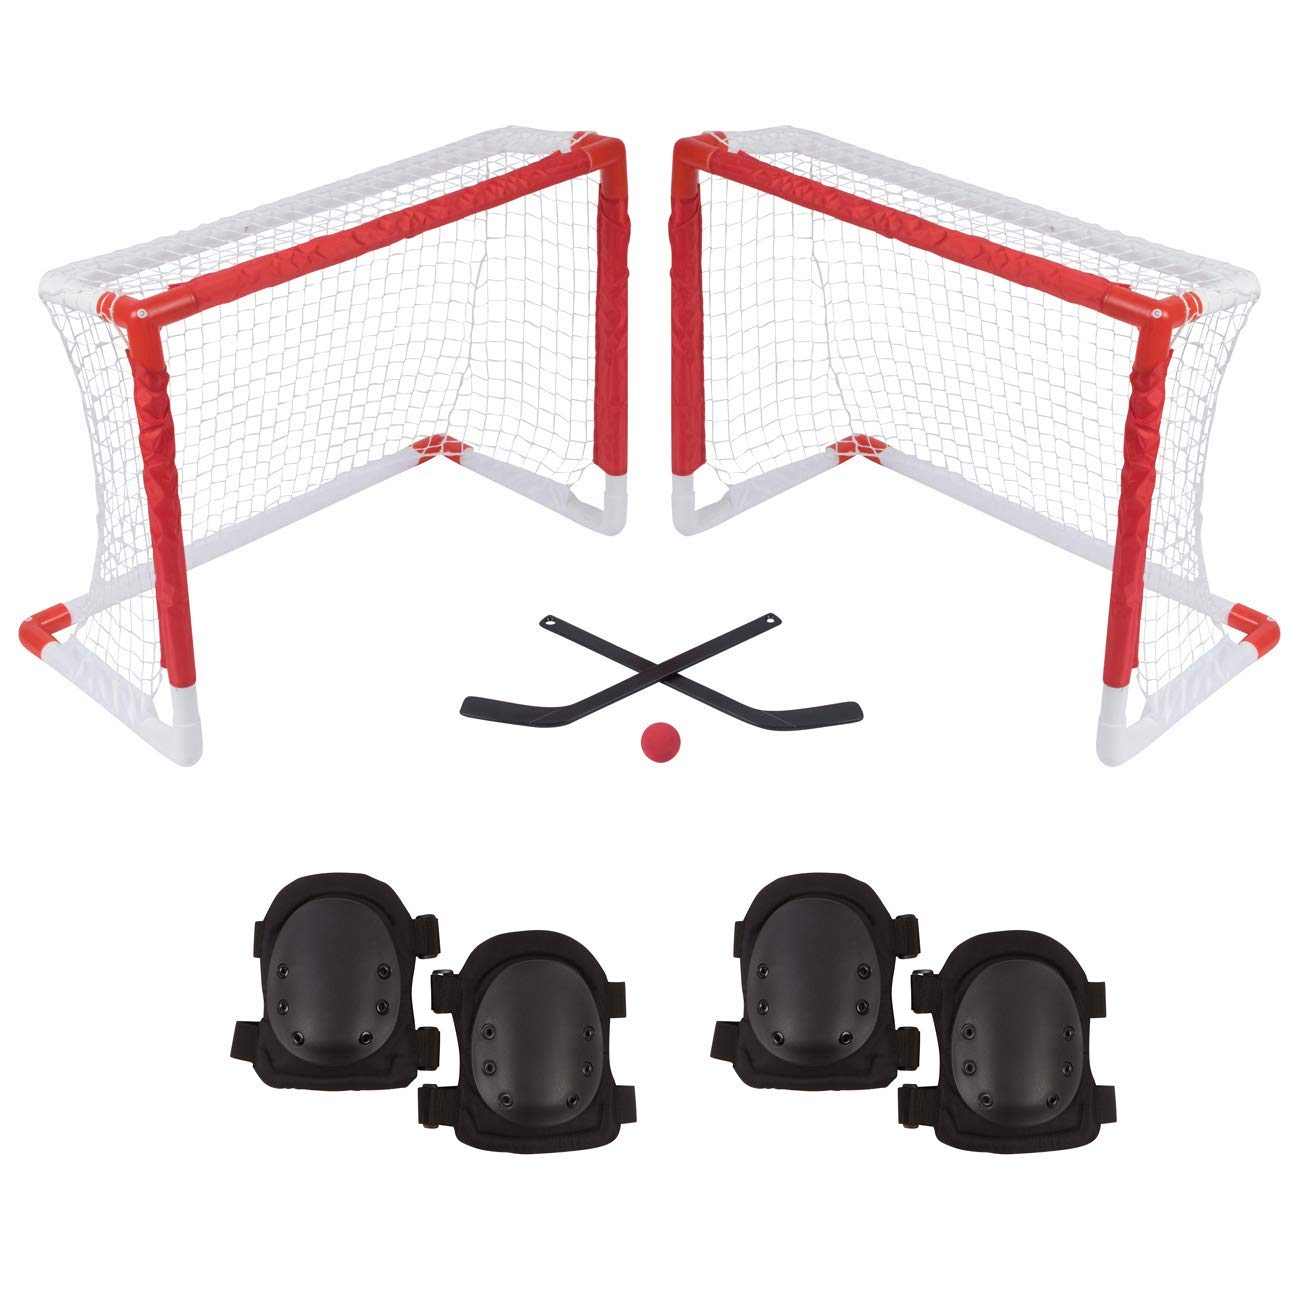 8b4d1d4871a Get Quotations · Trademark Innovations Mini Knee Hockey Goal Set with 2  Goals